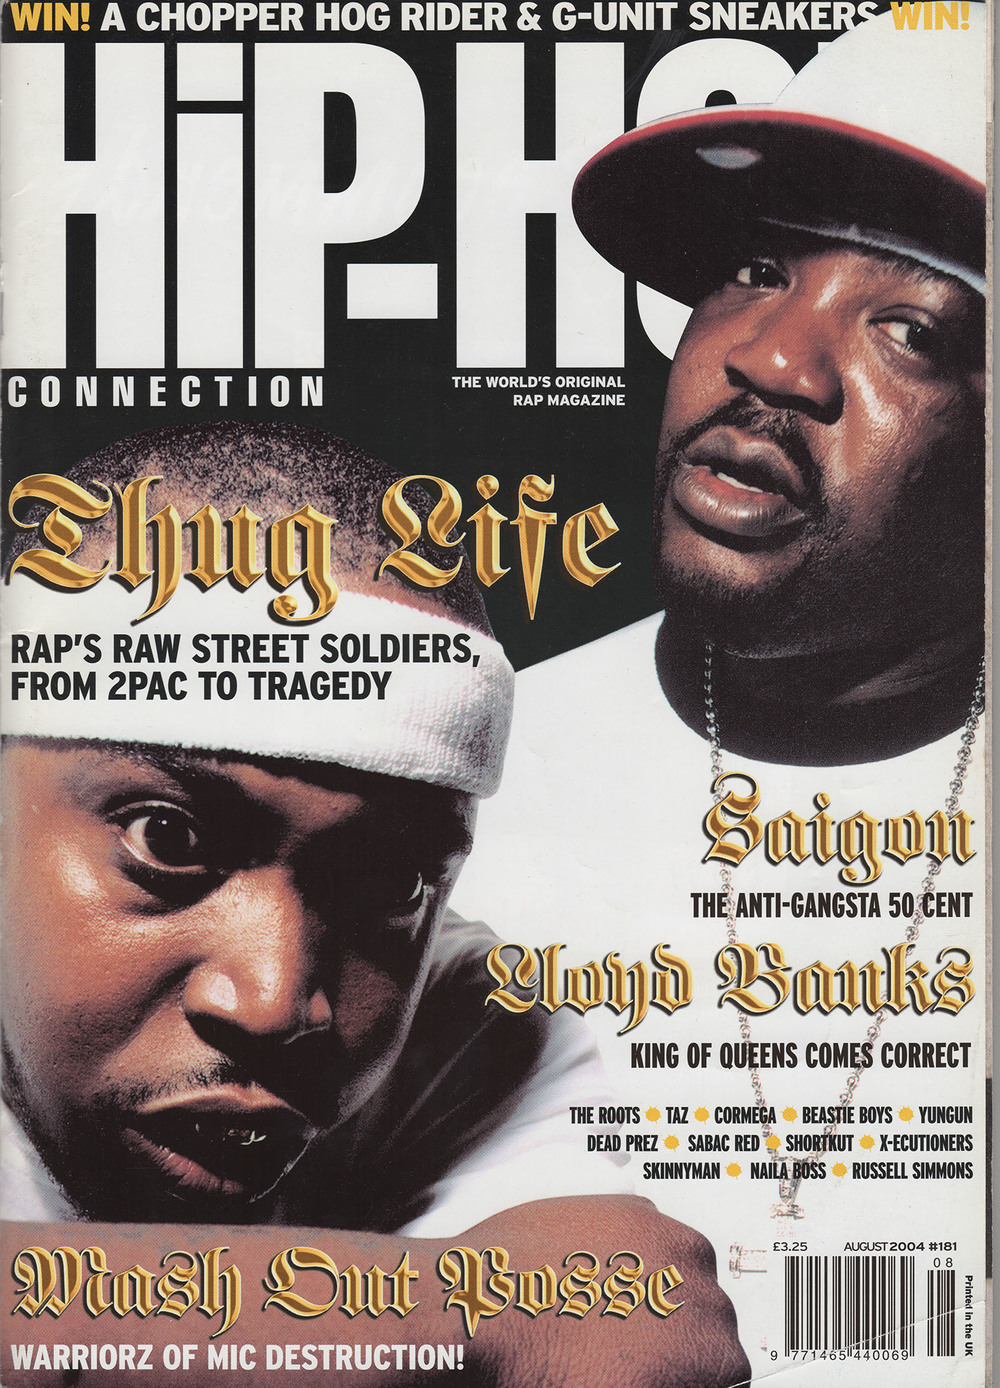 Hip-Hop Connection